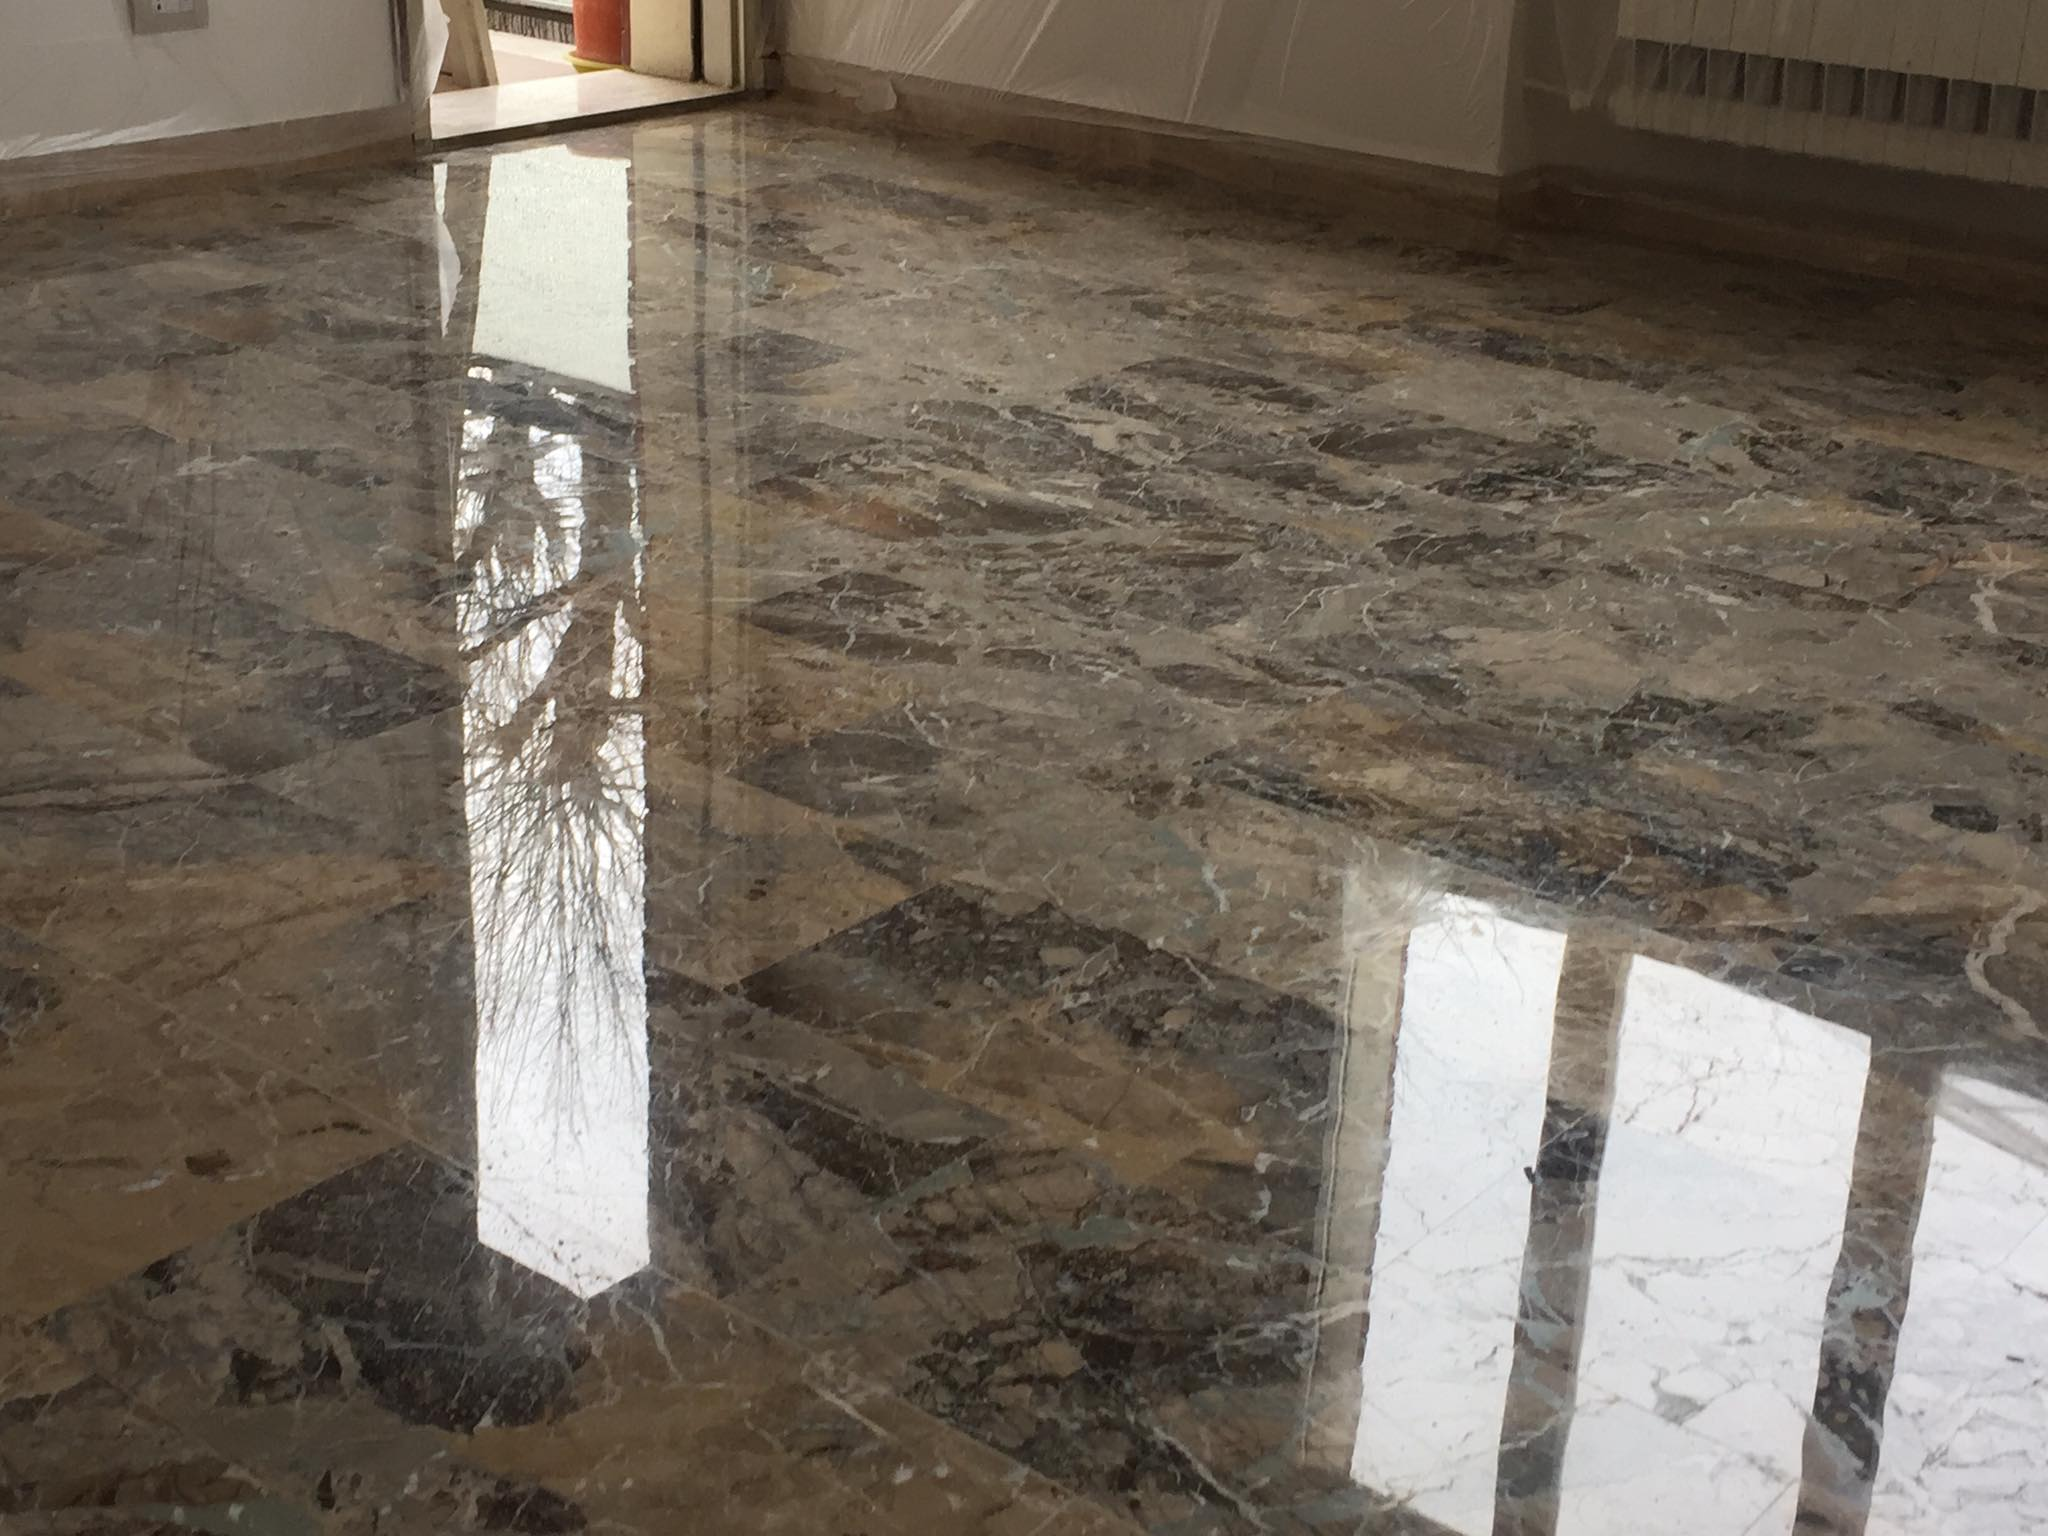 How To Grind Granite Countertops Terrazzo Floor Polish In Nigeria Review Home Co